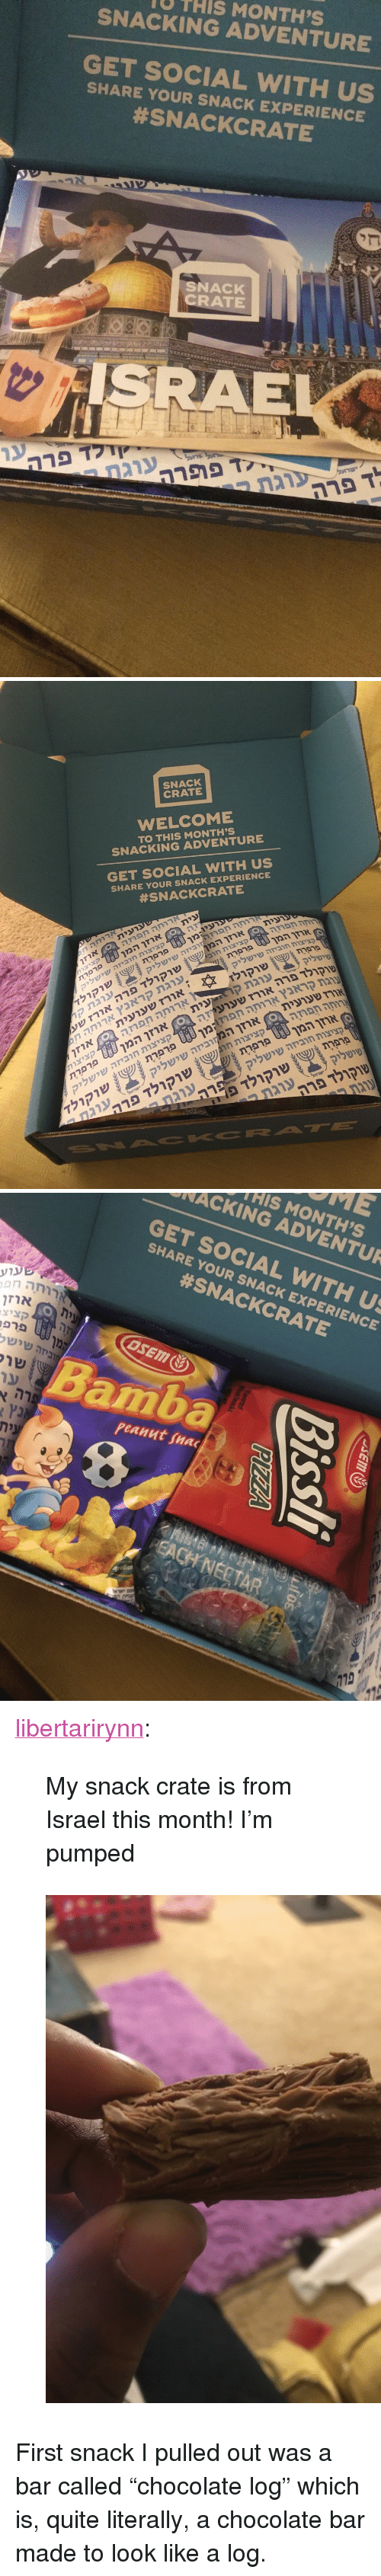 """Tumblr, Blog, and Chocolate: U THIS MONTH'S  SNACKING ADVENTURE  GET SOCIAL WITH US  SHARE YOUR SNACK EXPERIENCE  #SNACKCRATE  SNACK  CRATE  SRAE   SNACK  CRATE  WELCOME  TO THIS MONTH'S  SNACKING ADVENTURE  GET SOCIAL WITH US  SHARE YOUR SNACK EXPERIENCE  #SNACKCRATE  עית  ארזו  פרפרתמן  שישליקיזה  פרפרת  שישליחוביזה קציצות  רנית  שוקולד  שעאורז  ארז  חפוזהרחה  ארזי  קראנץעוגת  שעועיתאורז  חפרזהארוחה  שישליקחוביזה ציצות  פרפרת  שוקולד  קצי  manארוחה קראנץ וגת  פרפרת  שישליחוביזה קציצות  שישליקיזה המן אוזן שעועית  קציצות  פרפרתהמן אוזן  שישליקחוביזה קציצות  שוקולד  שו( שישליק   HIS MONTH'S  NACKING ADVENTUR  GET SOCIAL WITH U  SHARE YOUR SNACK EXPERIENCE  #SNACKCRATE  ארזו  קציצ  amba  peanut snac  8 <p><a href=""""https://libertarirynn.tumblr.com/post/174257765184/my-snack-crate-is-from-israel-this-month-im"""" class=""""tumblr_blog"""">libertarirynn</a>:</p>  <blockquote><p>My snack crate is from Israel this month! I'm pumped</p></blockquote>  <figure class=""""tmblr-full"""" data-orig-height=""""1280"""" data-orig-width=""""960""""><img src=""""https://78.media.tumblr.com/df14065f47e8c111d8dc63d2f31b1177/tumblr_inline_p9bc0jGGDh1rw09tq_500.jpg"""" data-orig-height=""""1280"""" data-orig-width=""""960""""/></figure><p>First snack I pulled out was a bar called """"chocolate log"""" which is, quite literally, a chocolate bar made to look like a log.</p>"""